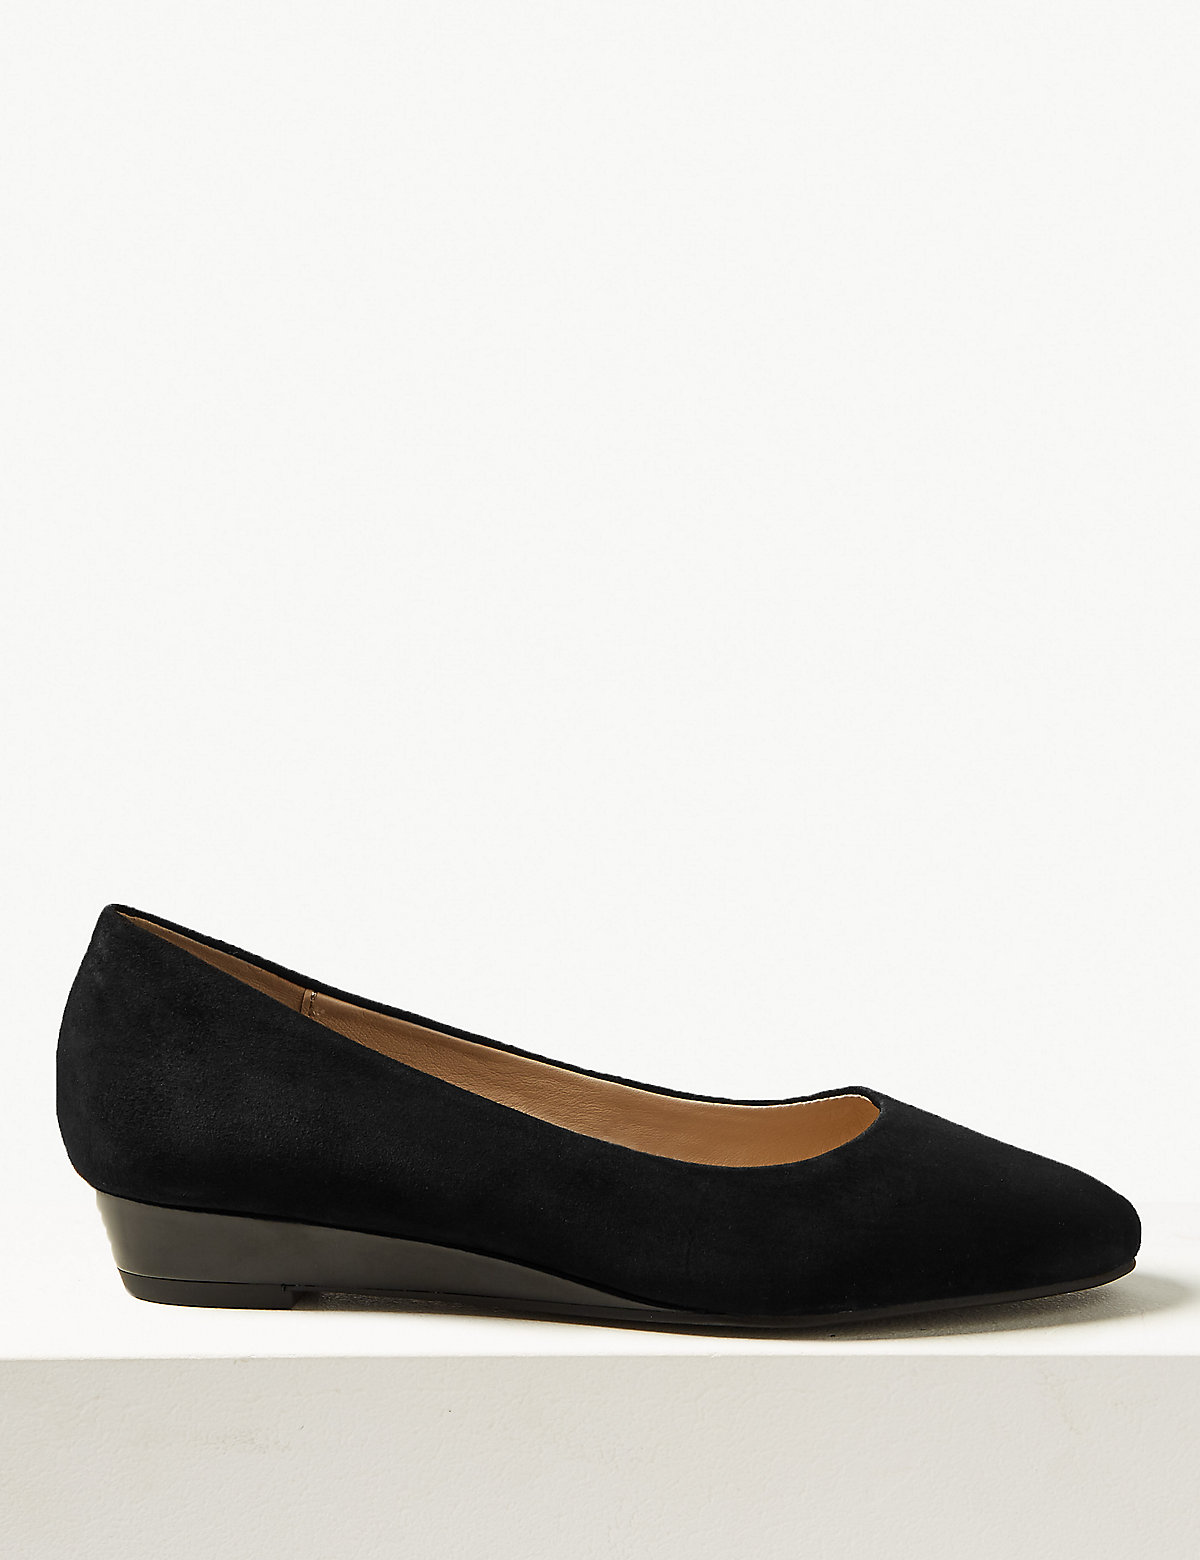 Footglove Suede Smart Wedge Pumps with Footglove